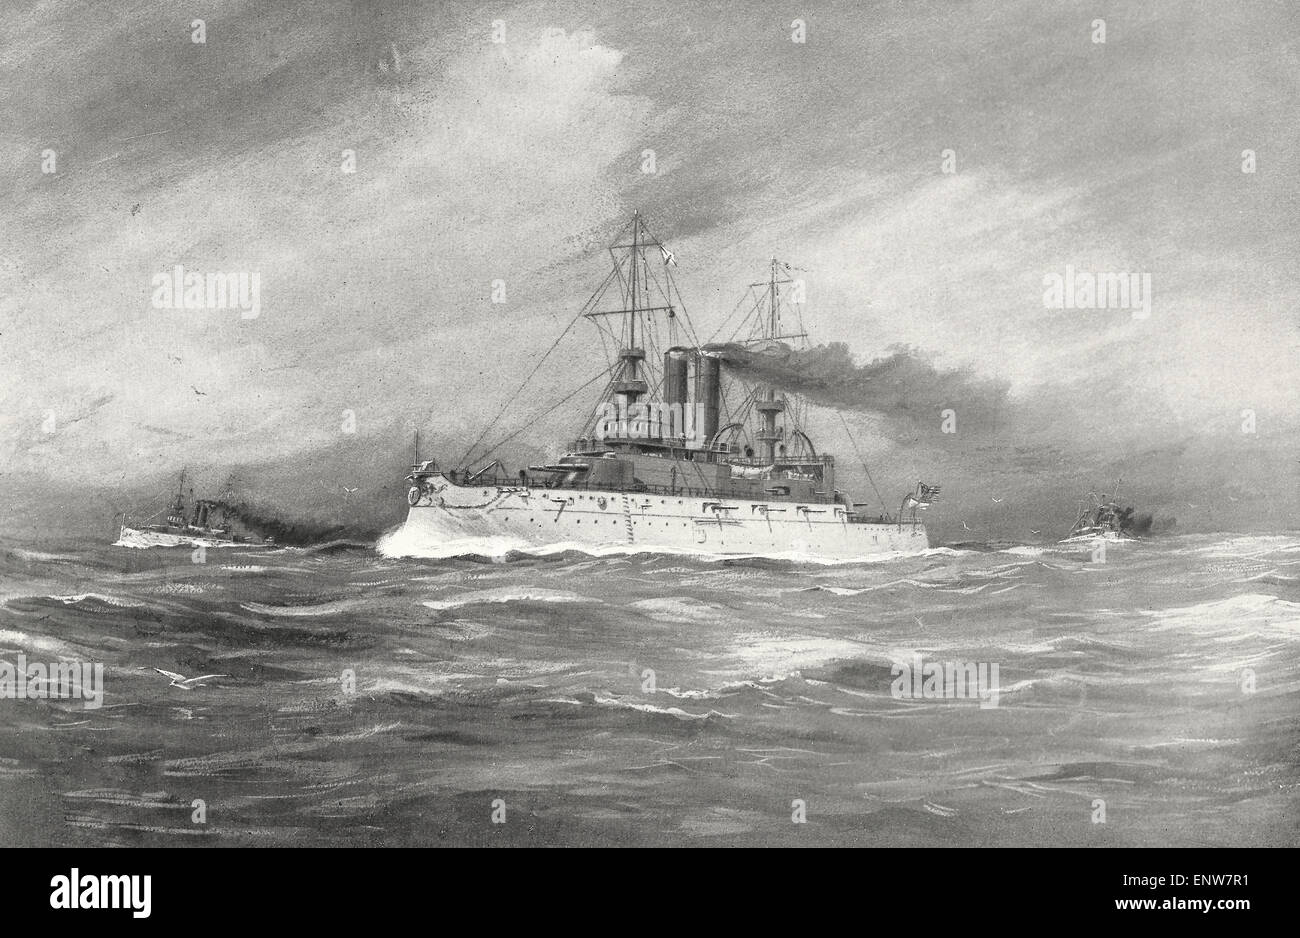 The United States Battleships USS Illinois, USS Alabama and USS Wisconsin during the Spanish American War - Stock Image